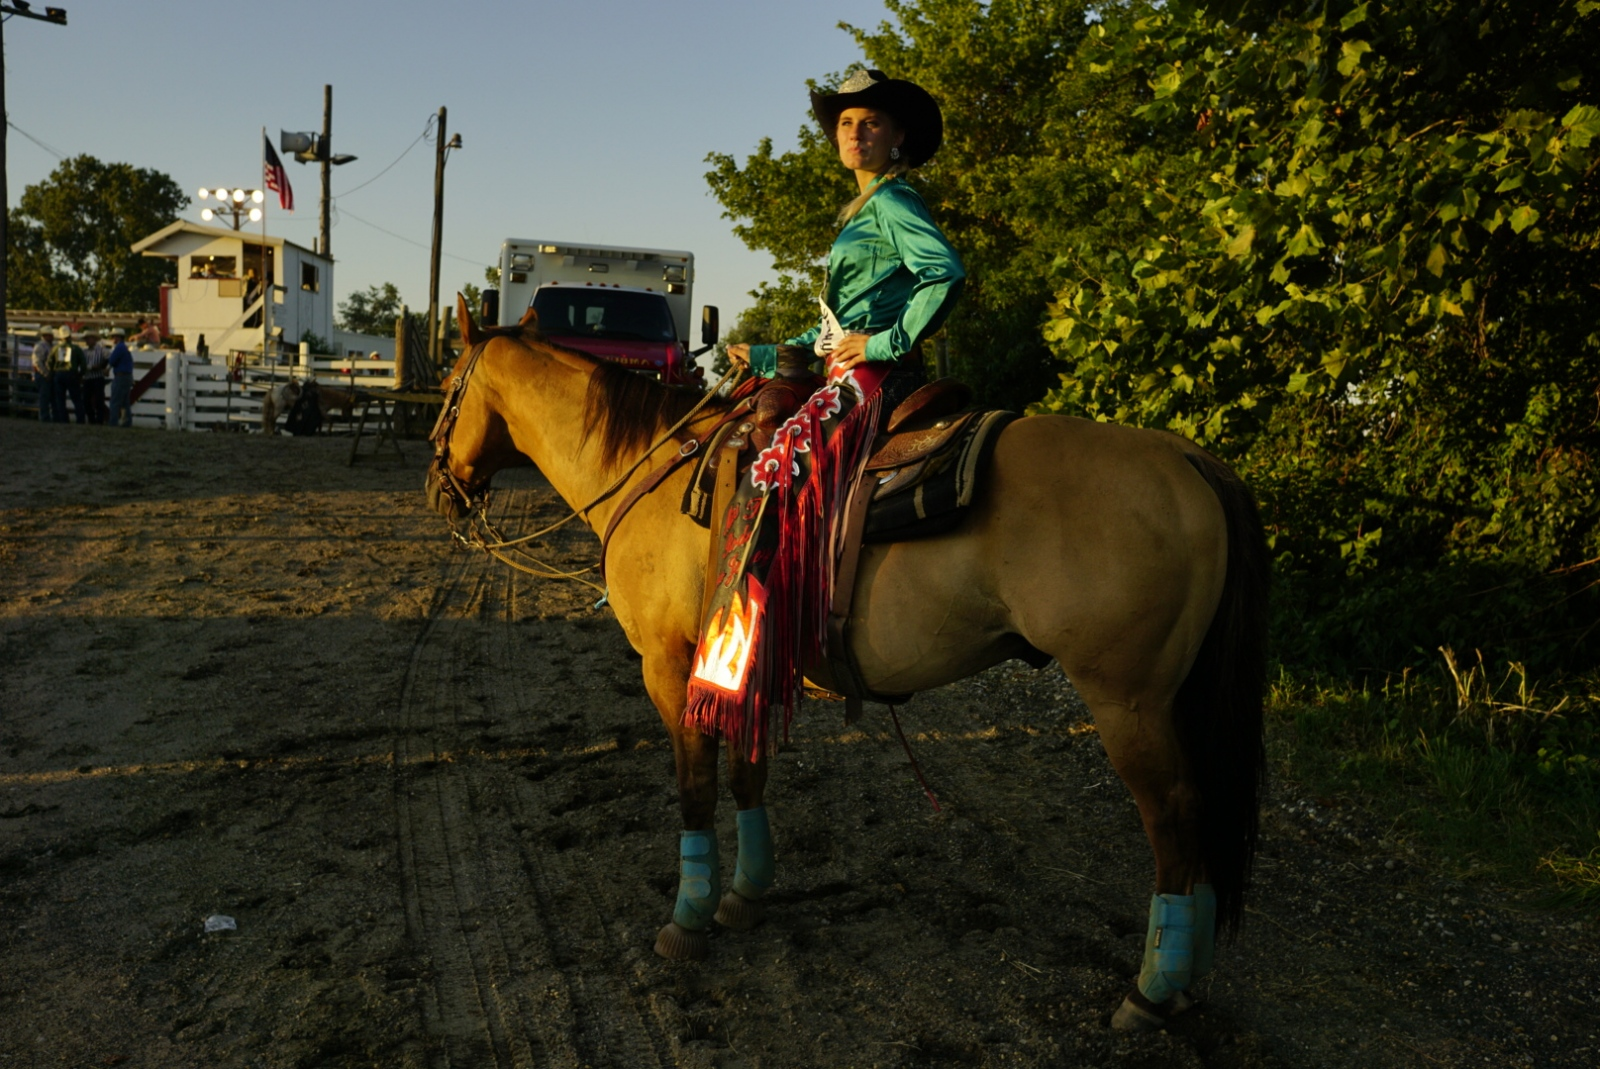 Kelsey Wallace, Miss Teen Rodeo New Jersey, before the start of the rodeo at Cowtown Rodeo in Woodstown, NJ.(Kevin C. Downs/Agence Cosmos)